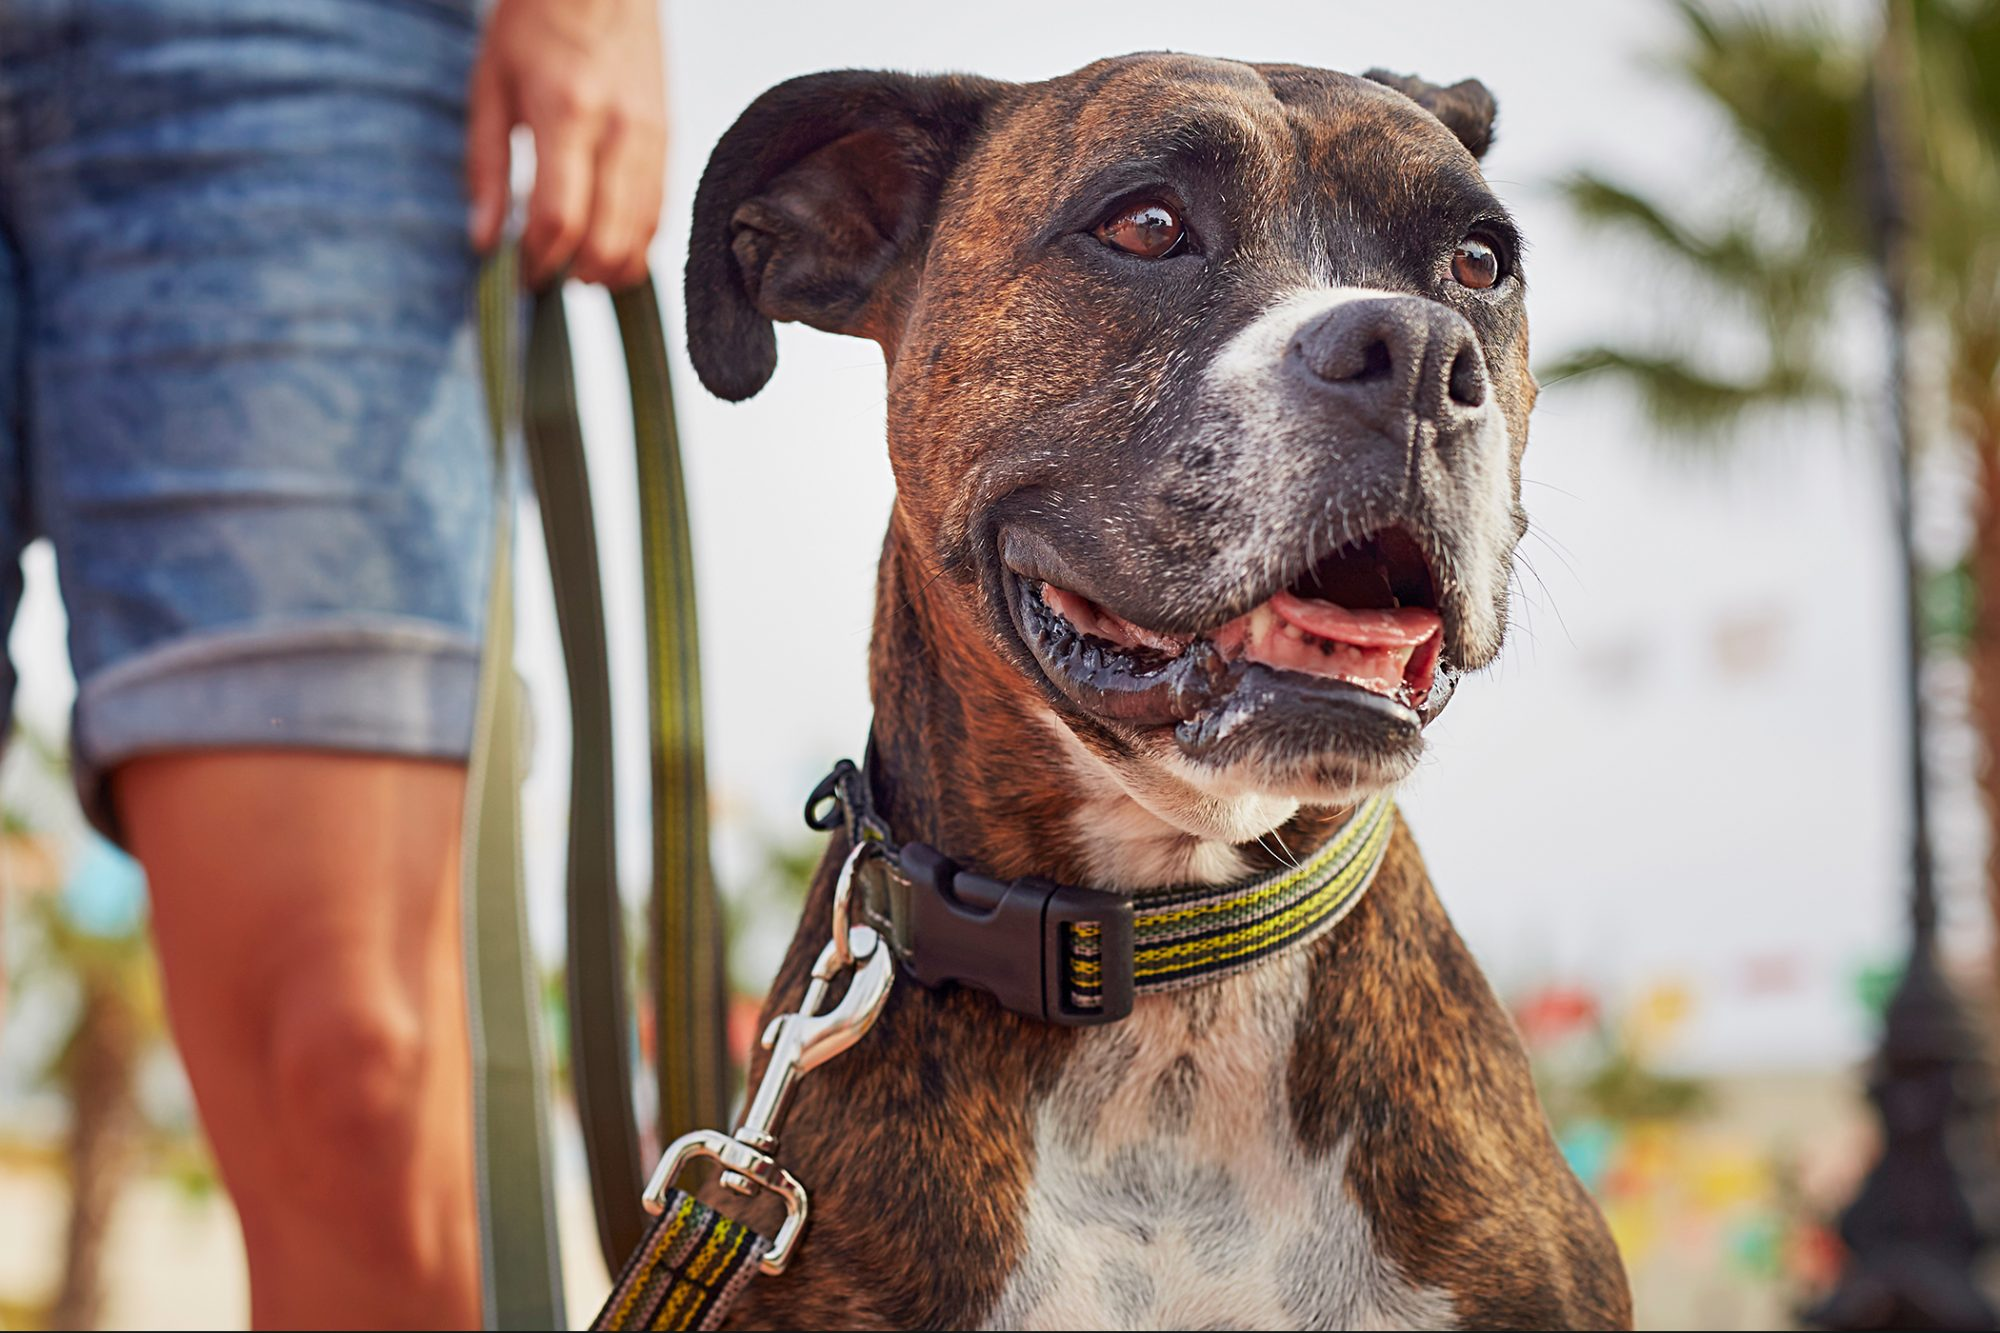 boxer wearing a grey and yellow collar on a leash with their owner in the background